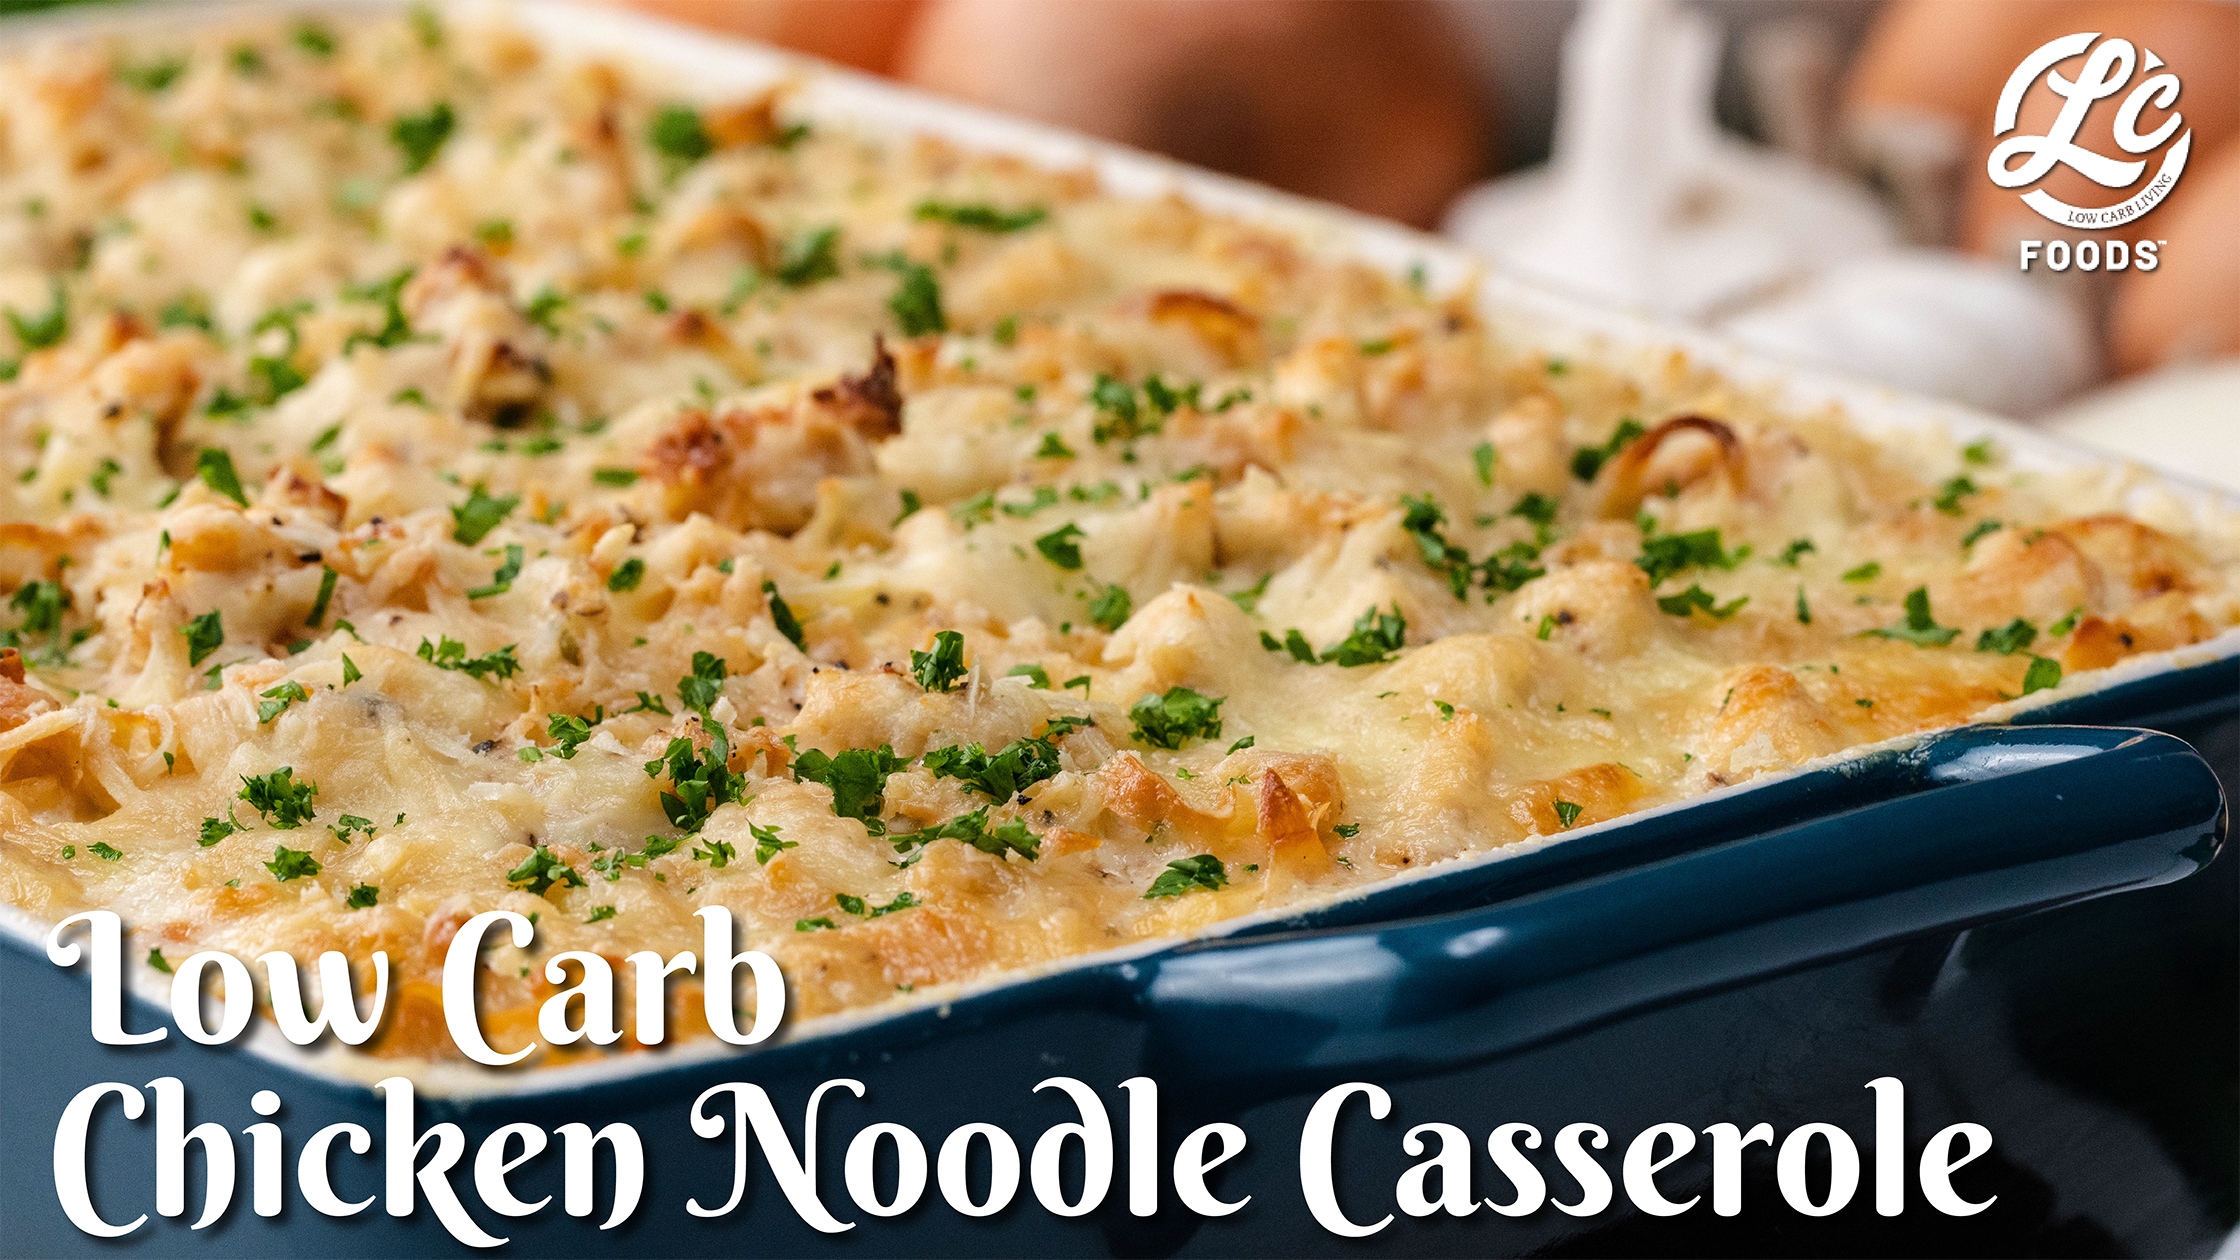 Thumbnail for Low Carb Chicken Noodle Casserole